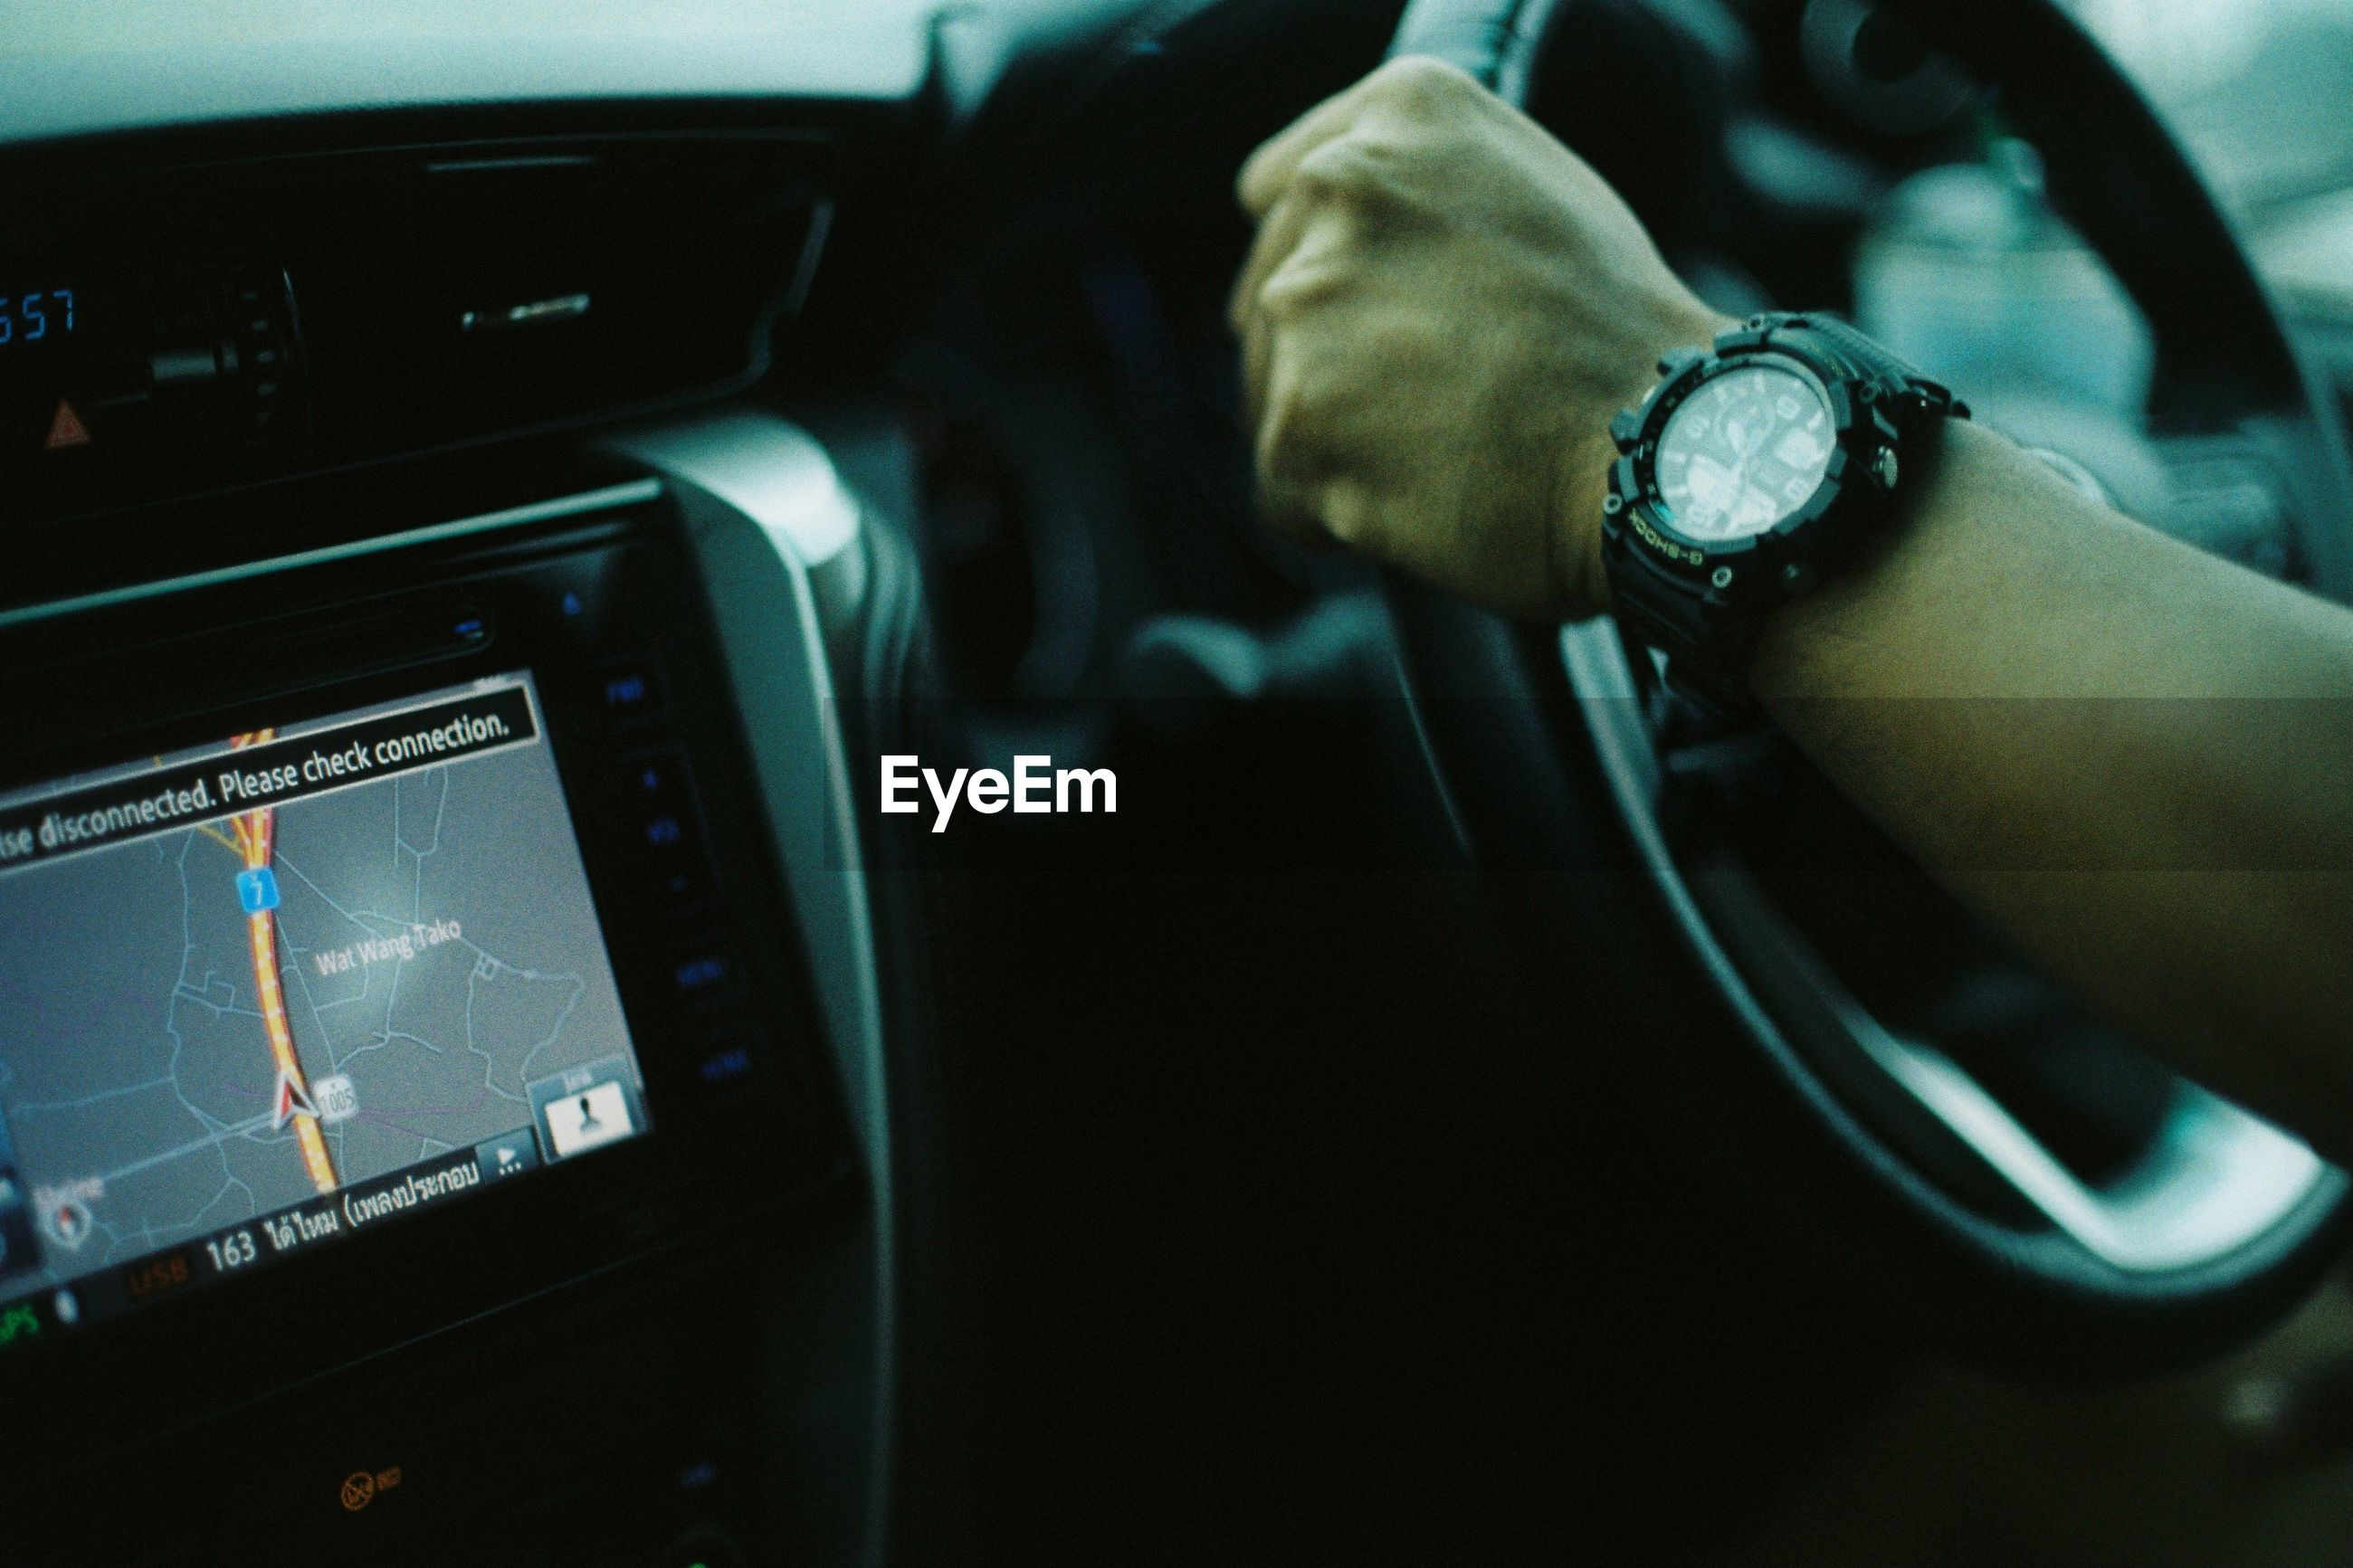 human hand, hand, human body part, time, watch, car, mode of transportation, wristwatch, transportation, motor vehicle, car interior, one person, vehicle interior, real people, body part, land vehicle, indoors, lifestyles, travel, finger